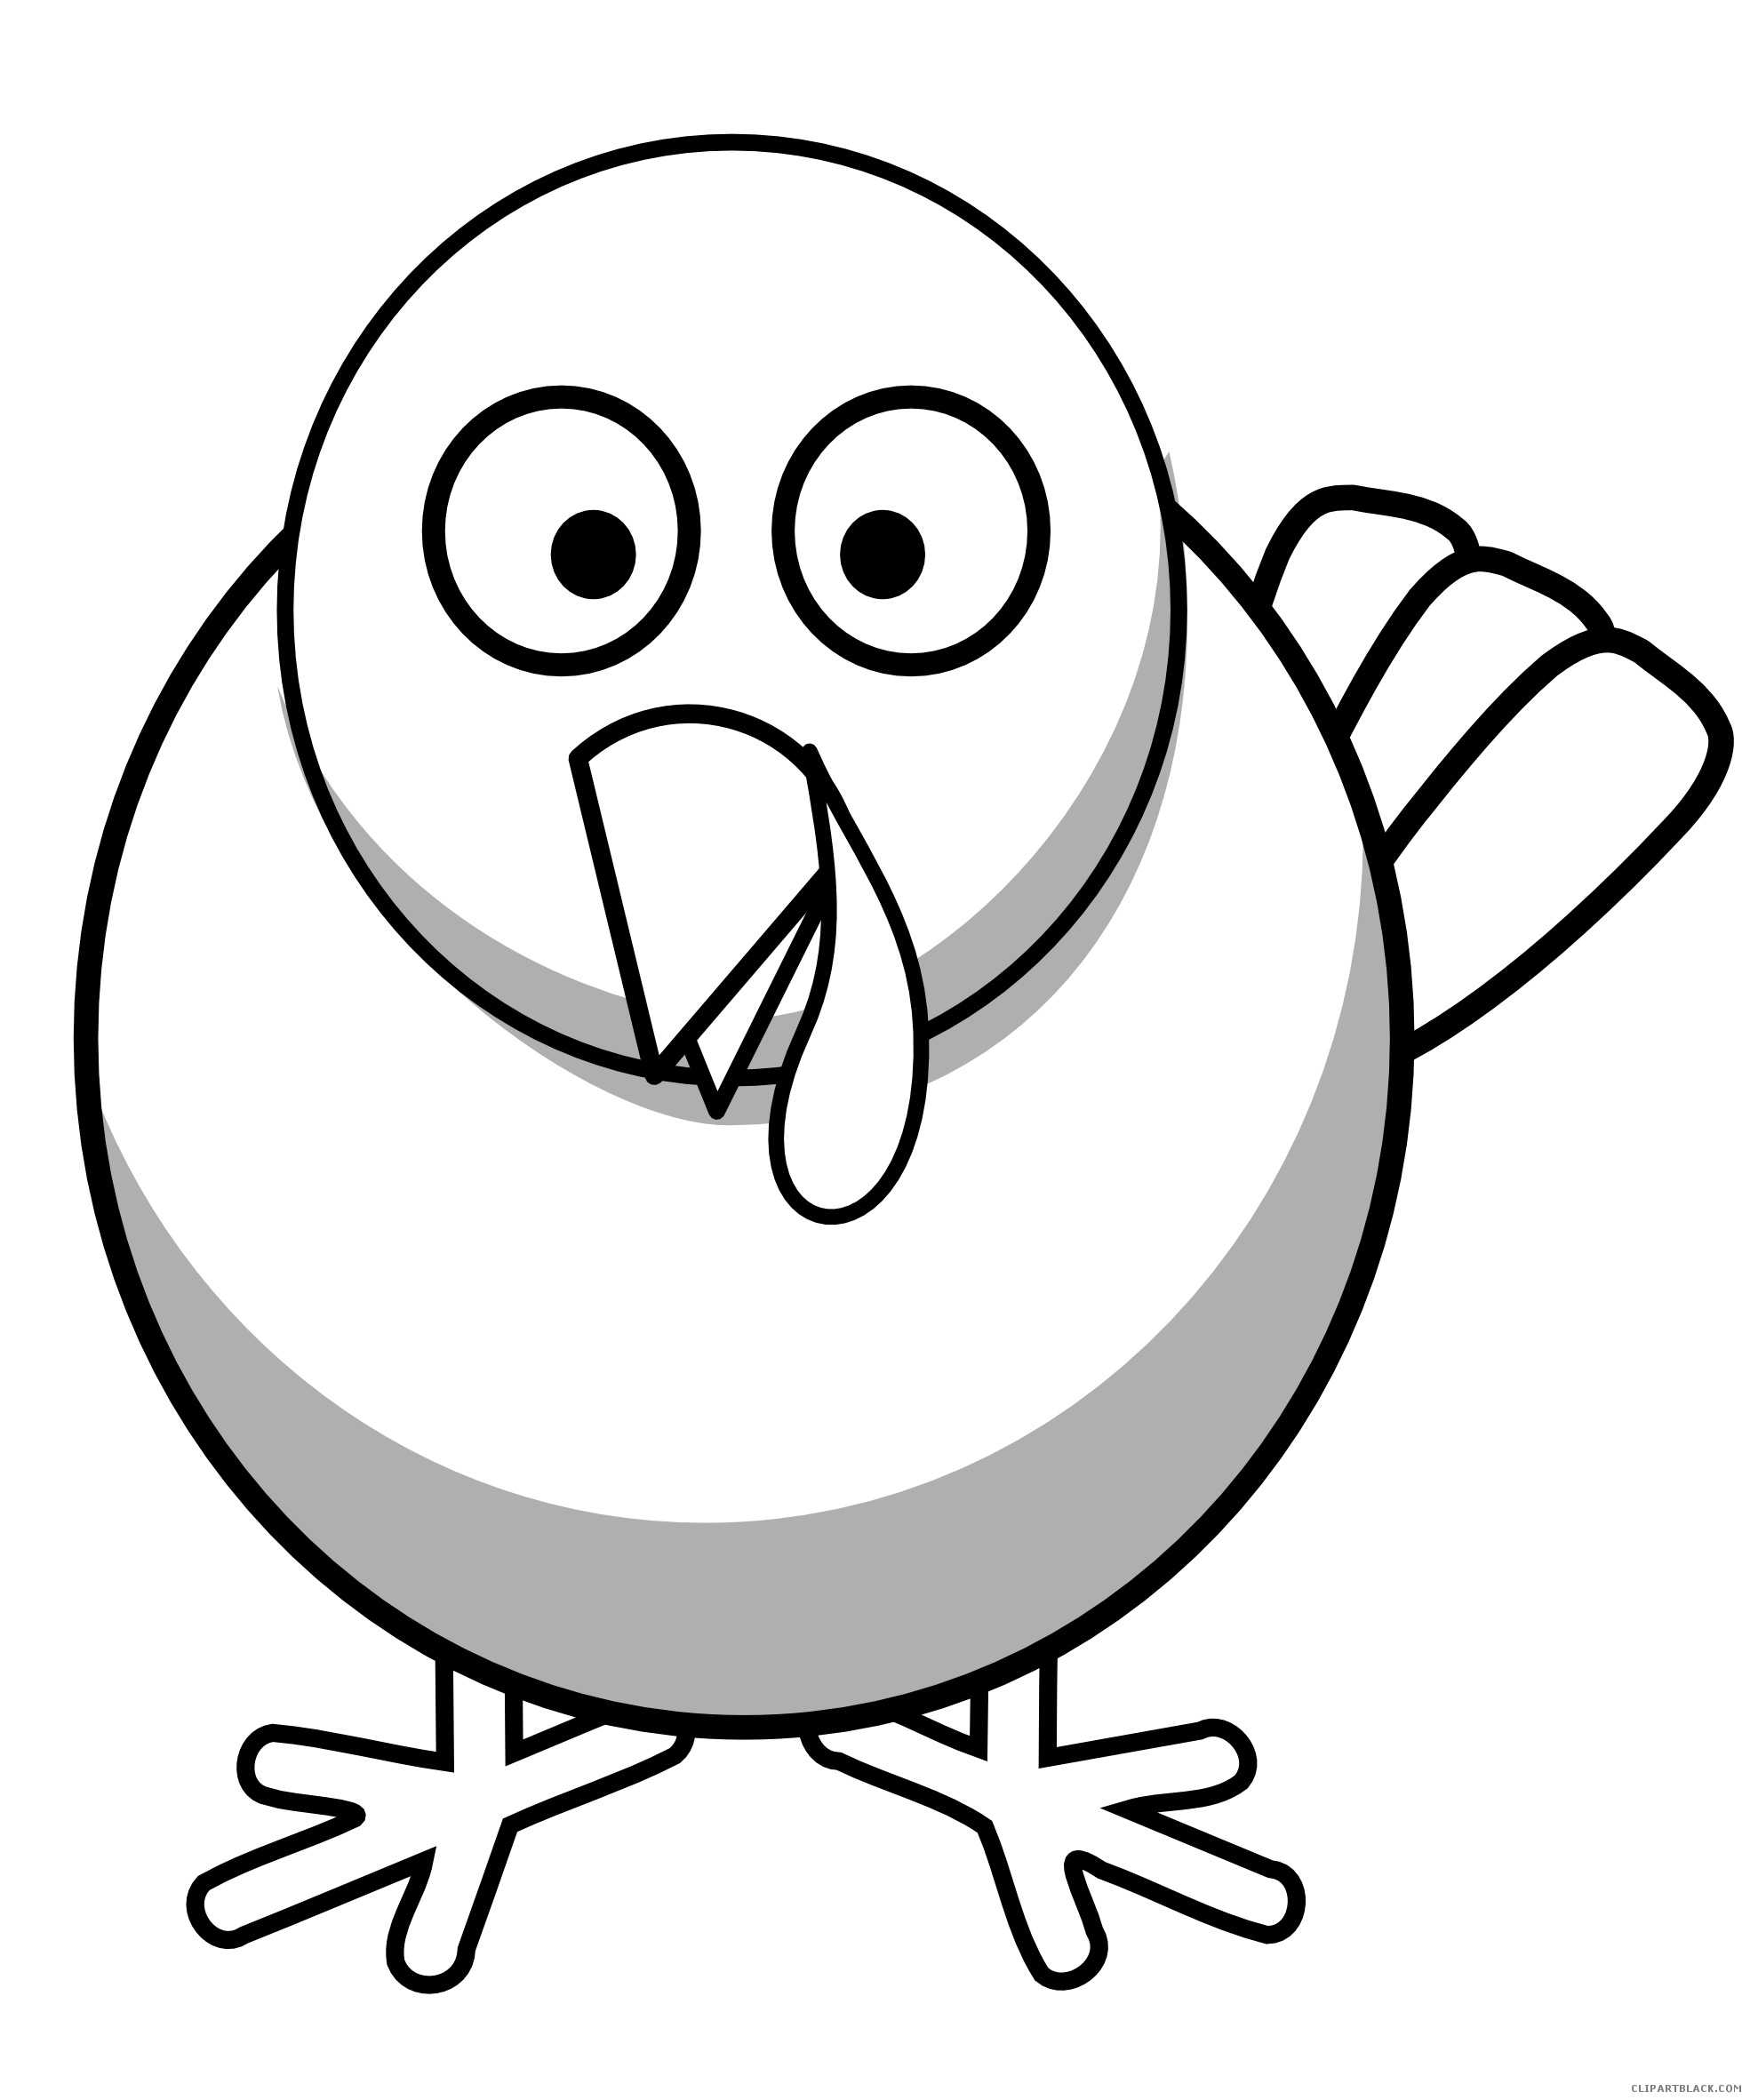 banner transparent stock Free picture transparent library. Wild turkey clipart black and white